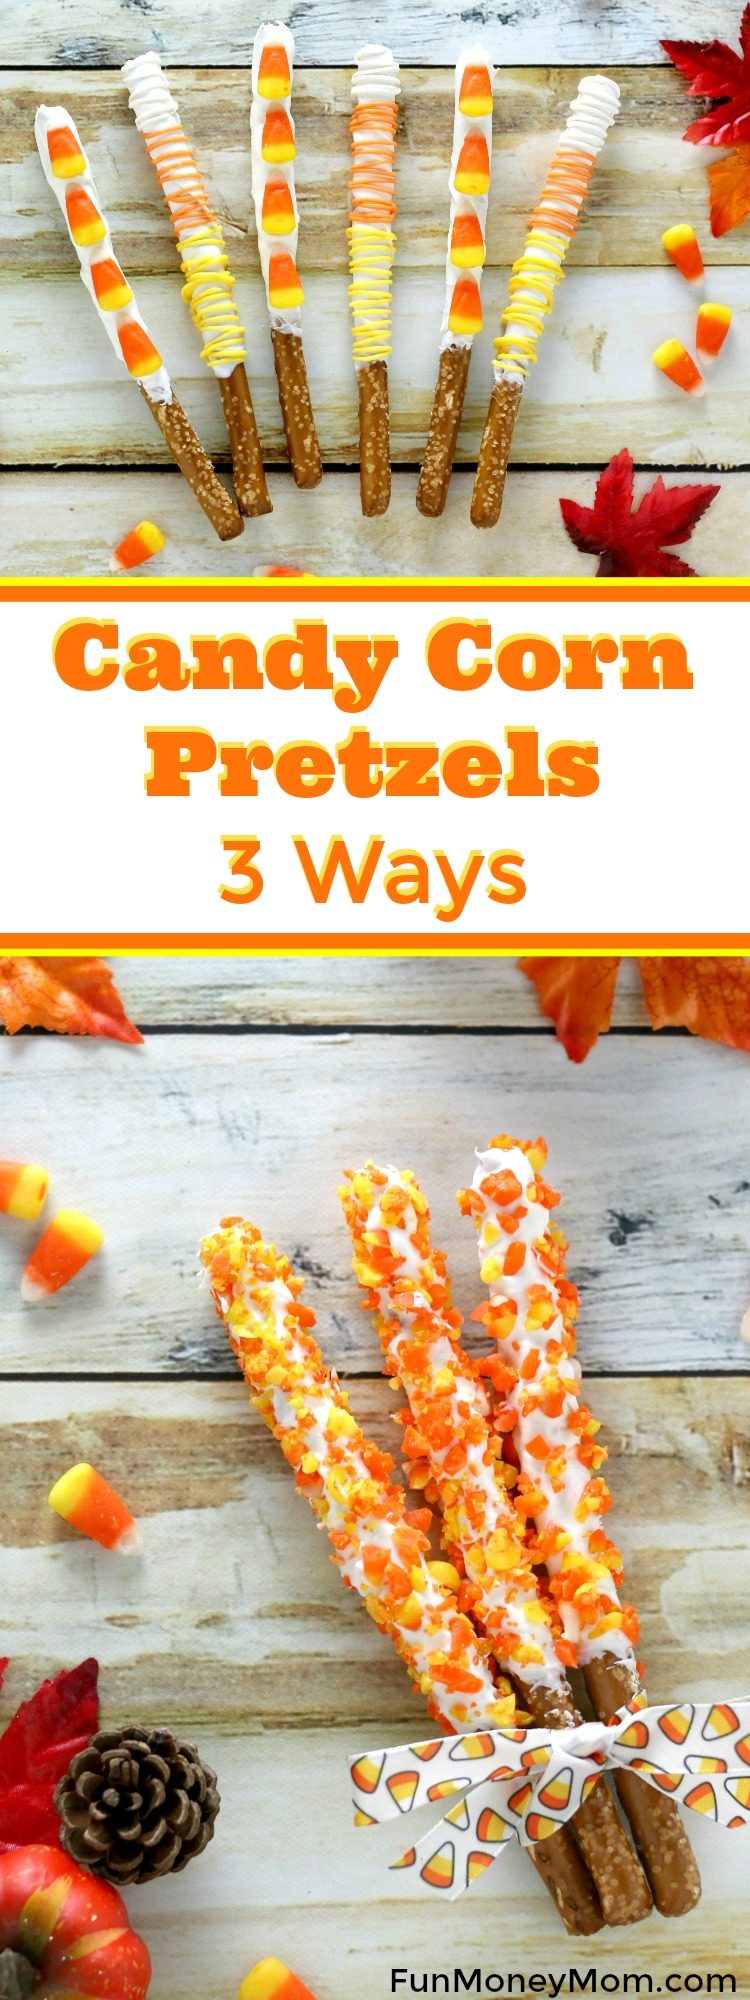 """Want a fun fall treat that you can make in a hurry? These Candy Corn Pretzels are not only delicious, they're super easy to make. Serve them at your Halloween party, add them to a """"Boo"""" Basket or turn them into a fun teacher gift."""